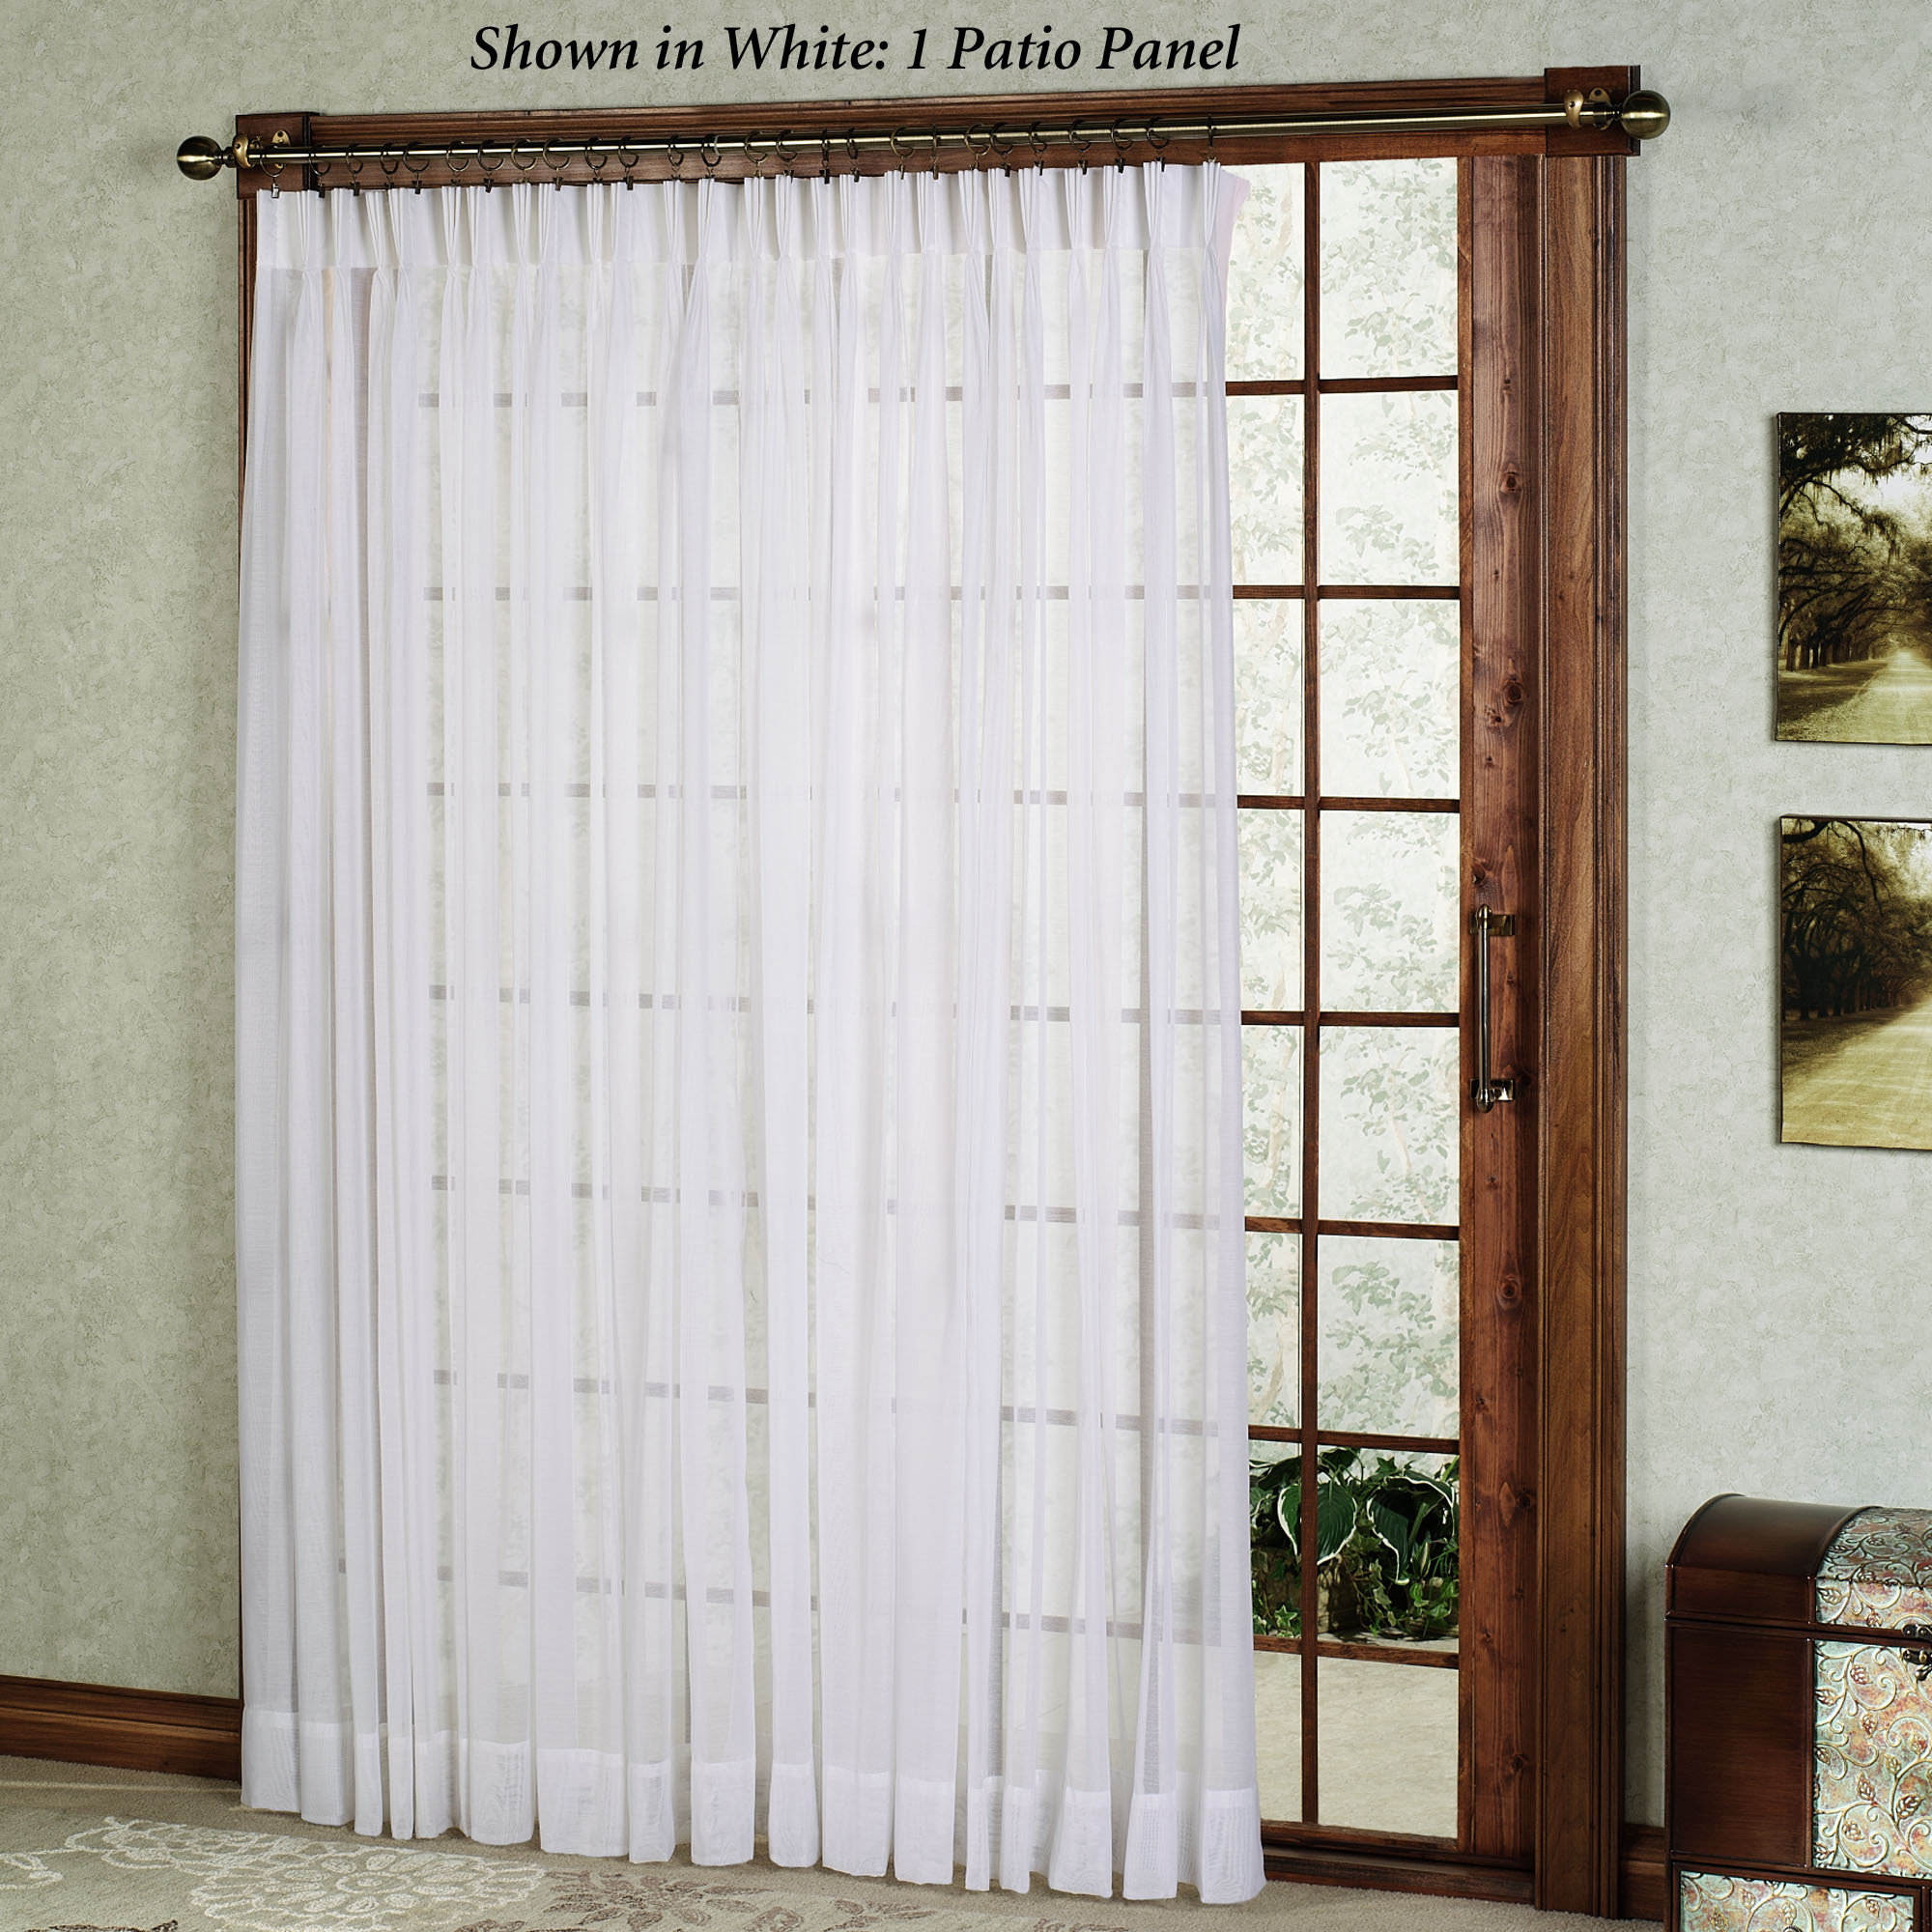 Curtain Solutions for Large Windows  Window Treatments amp Decor